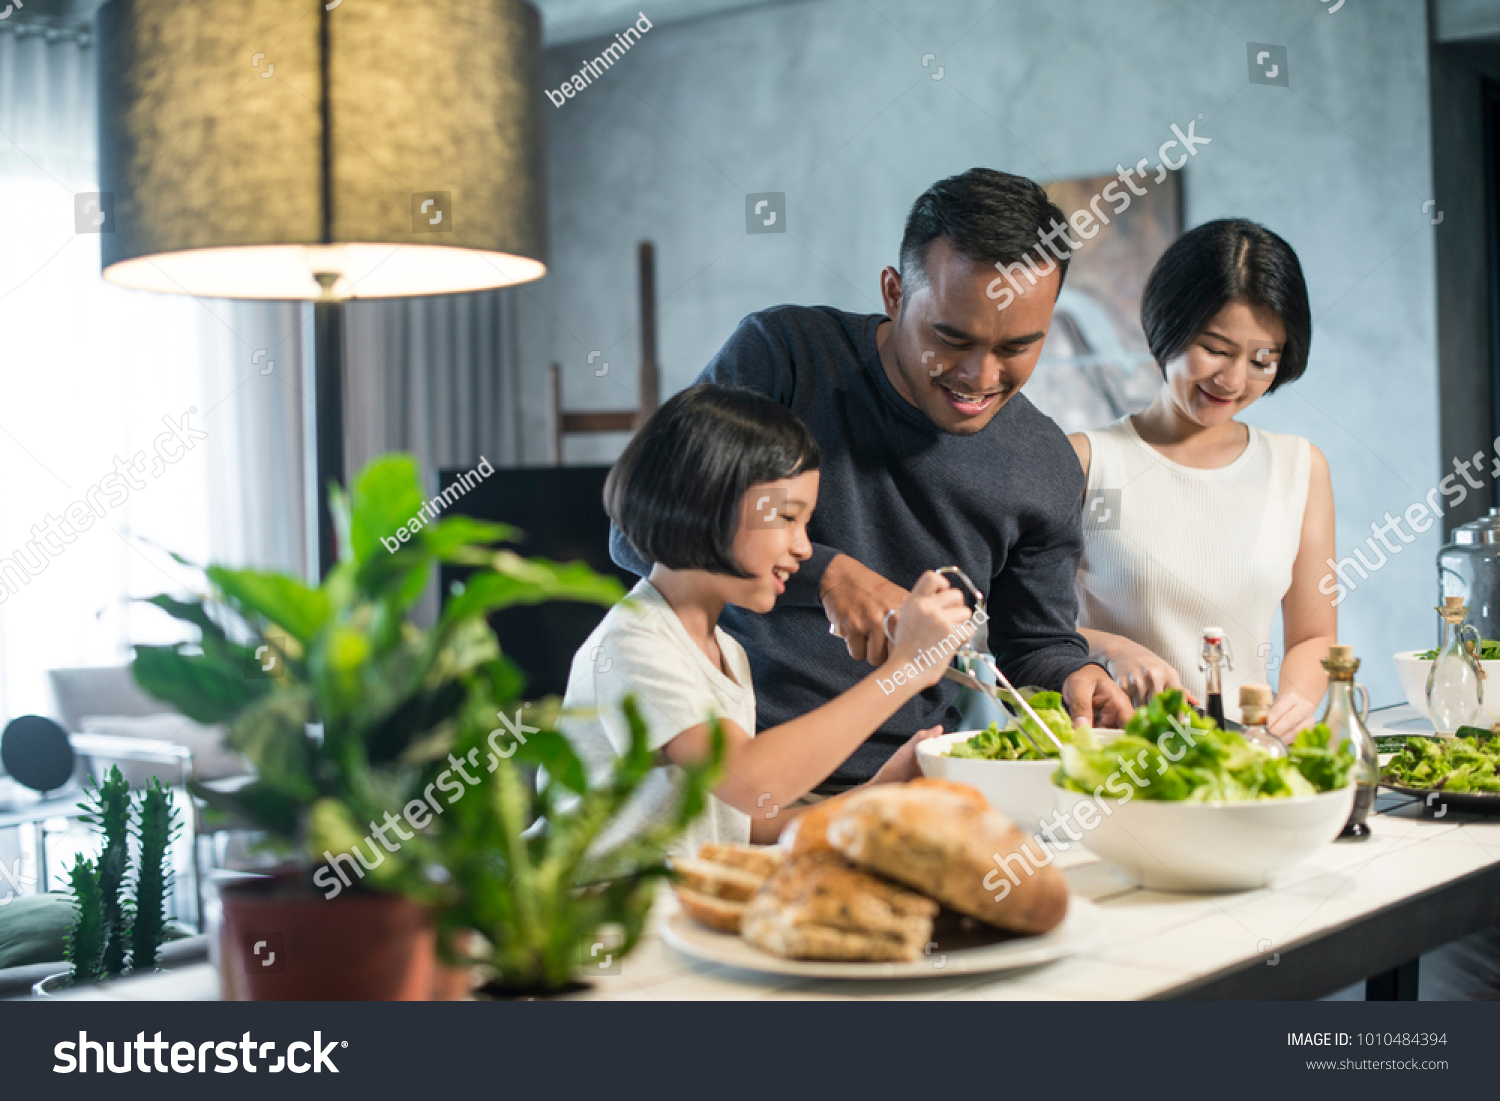 Happy Asian family preparing food in the kitchen. #1010484394